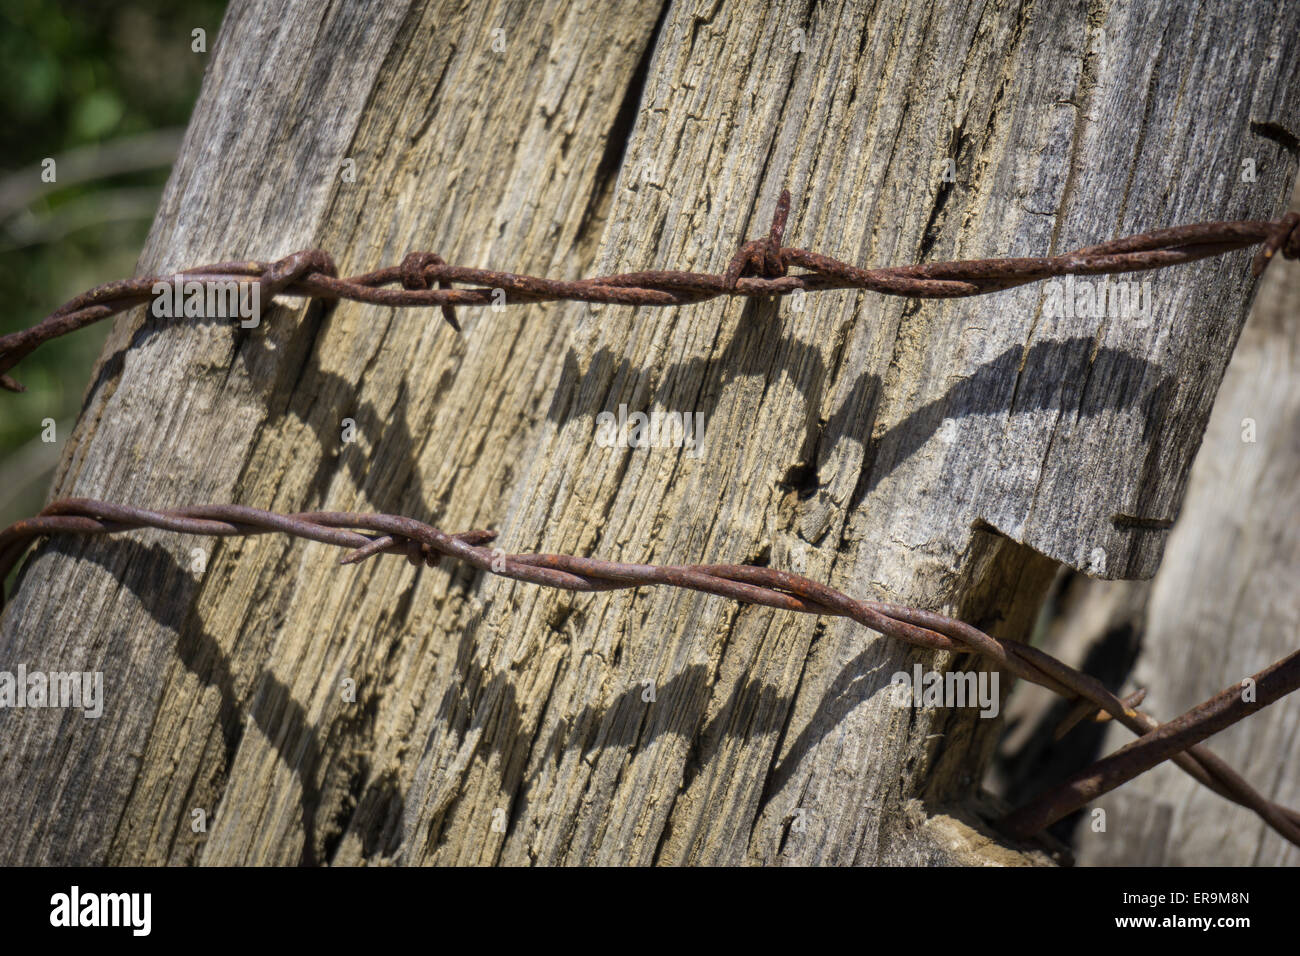 Twisted Fence Stock Photos & Twisted Fence Stock Images - Alamy